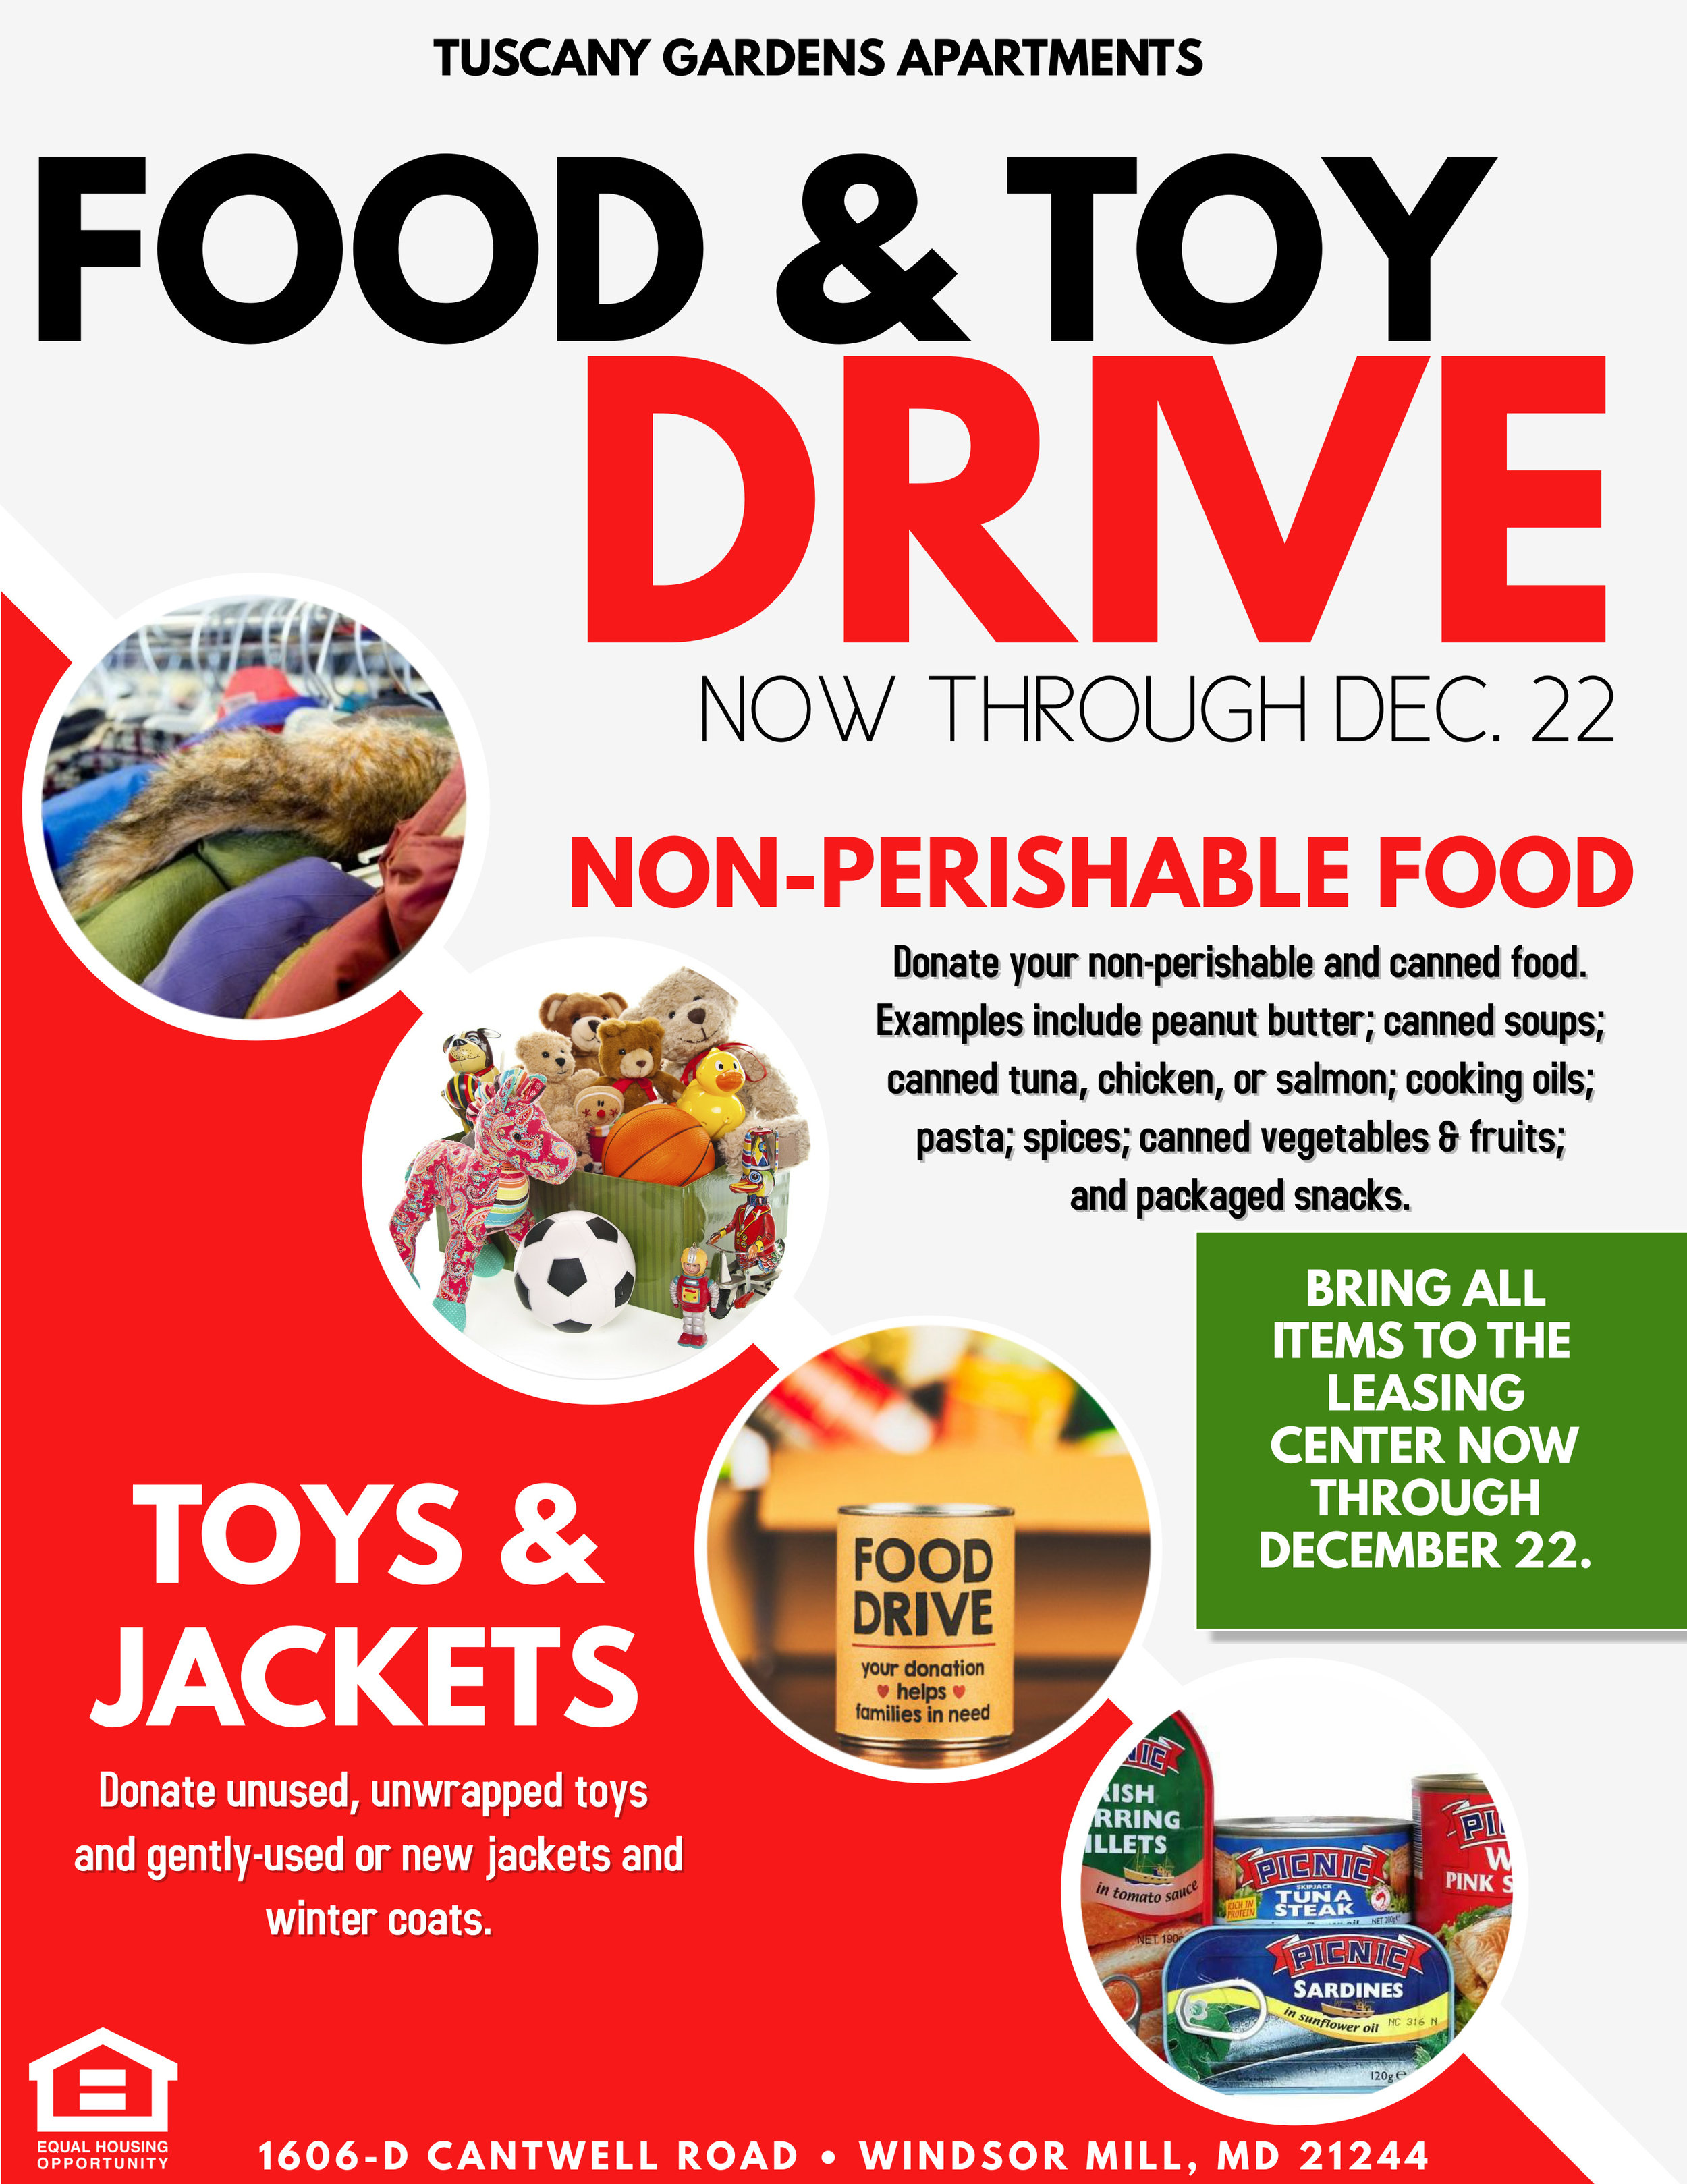 Food Drive at Tuscany Woods Apartments in Windsor Mill, MD